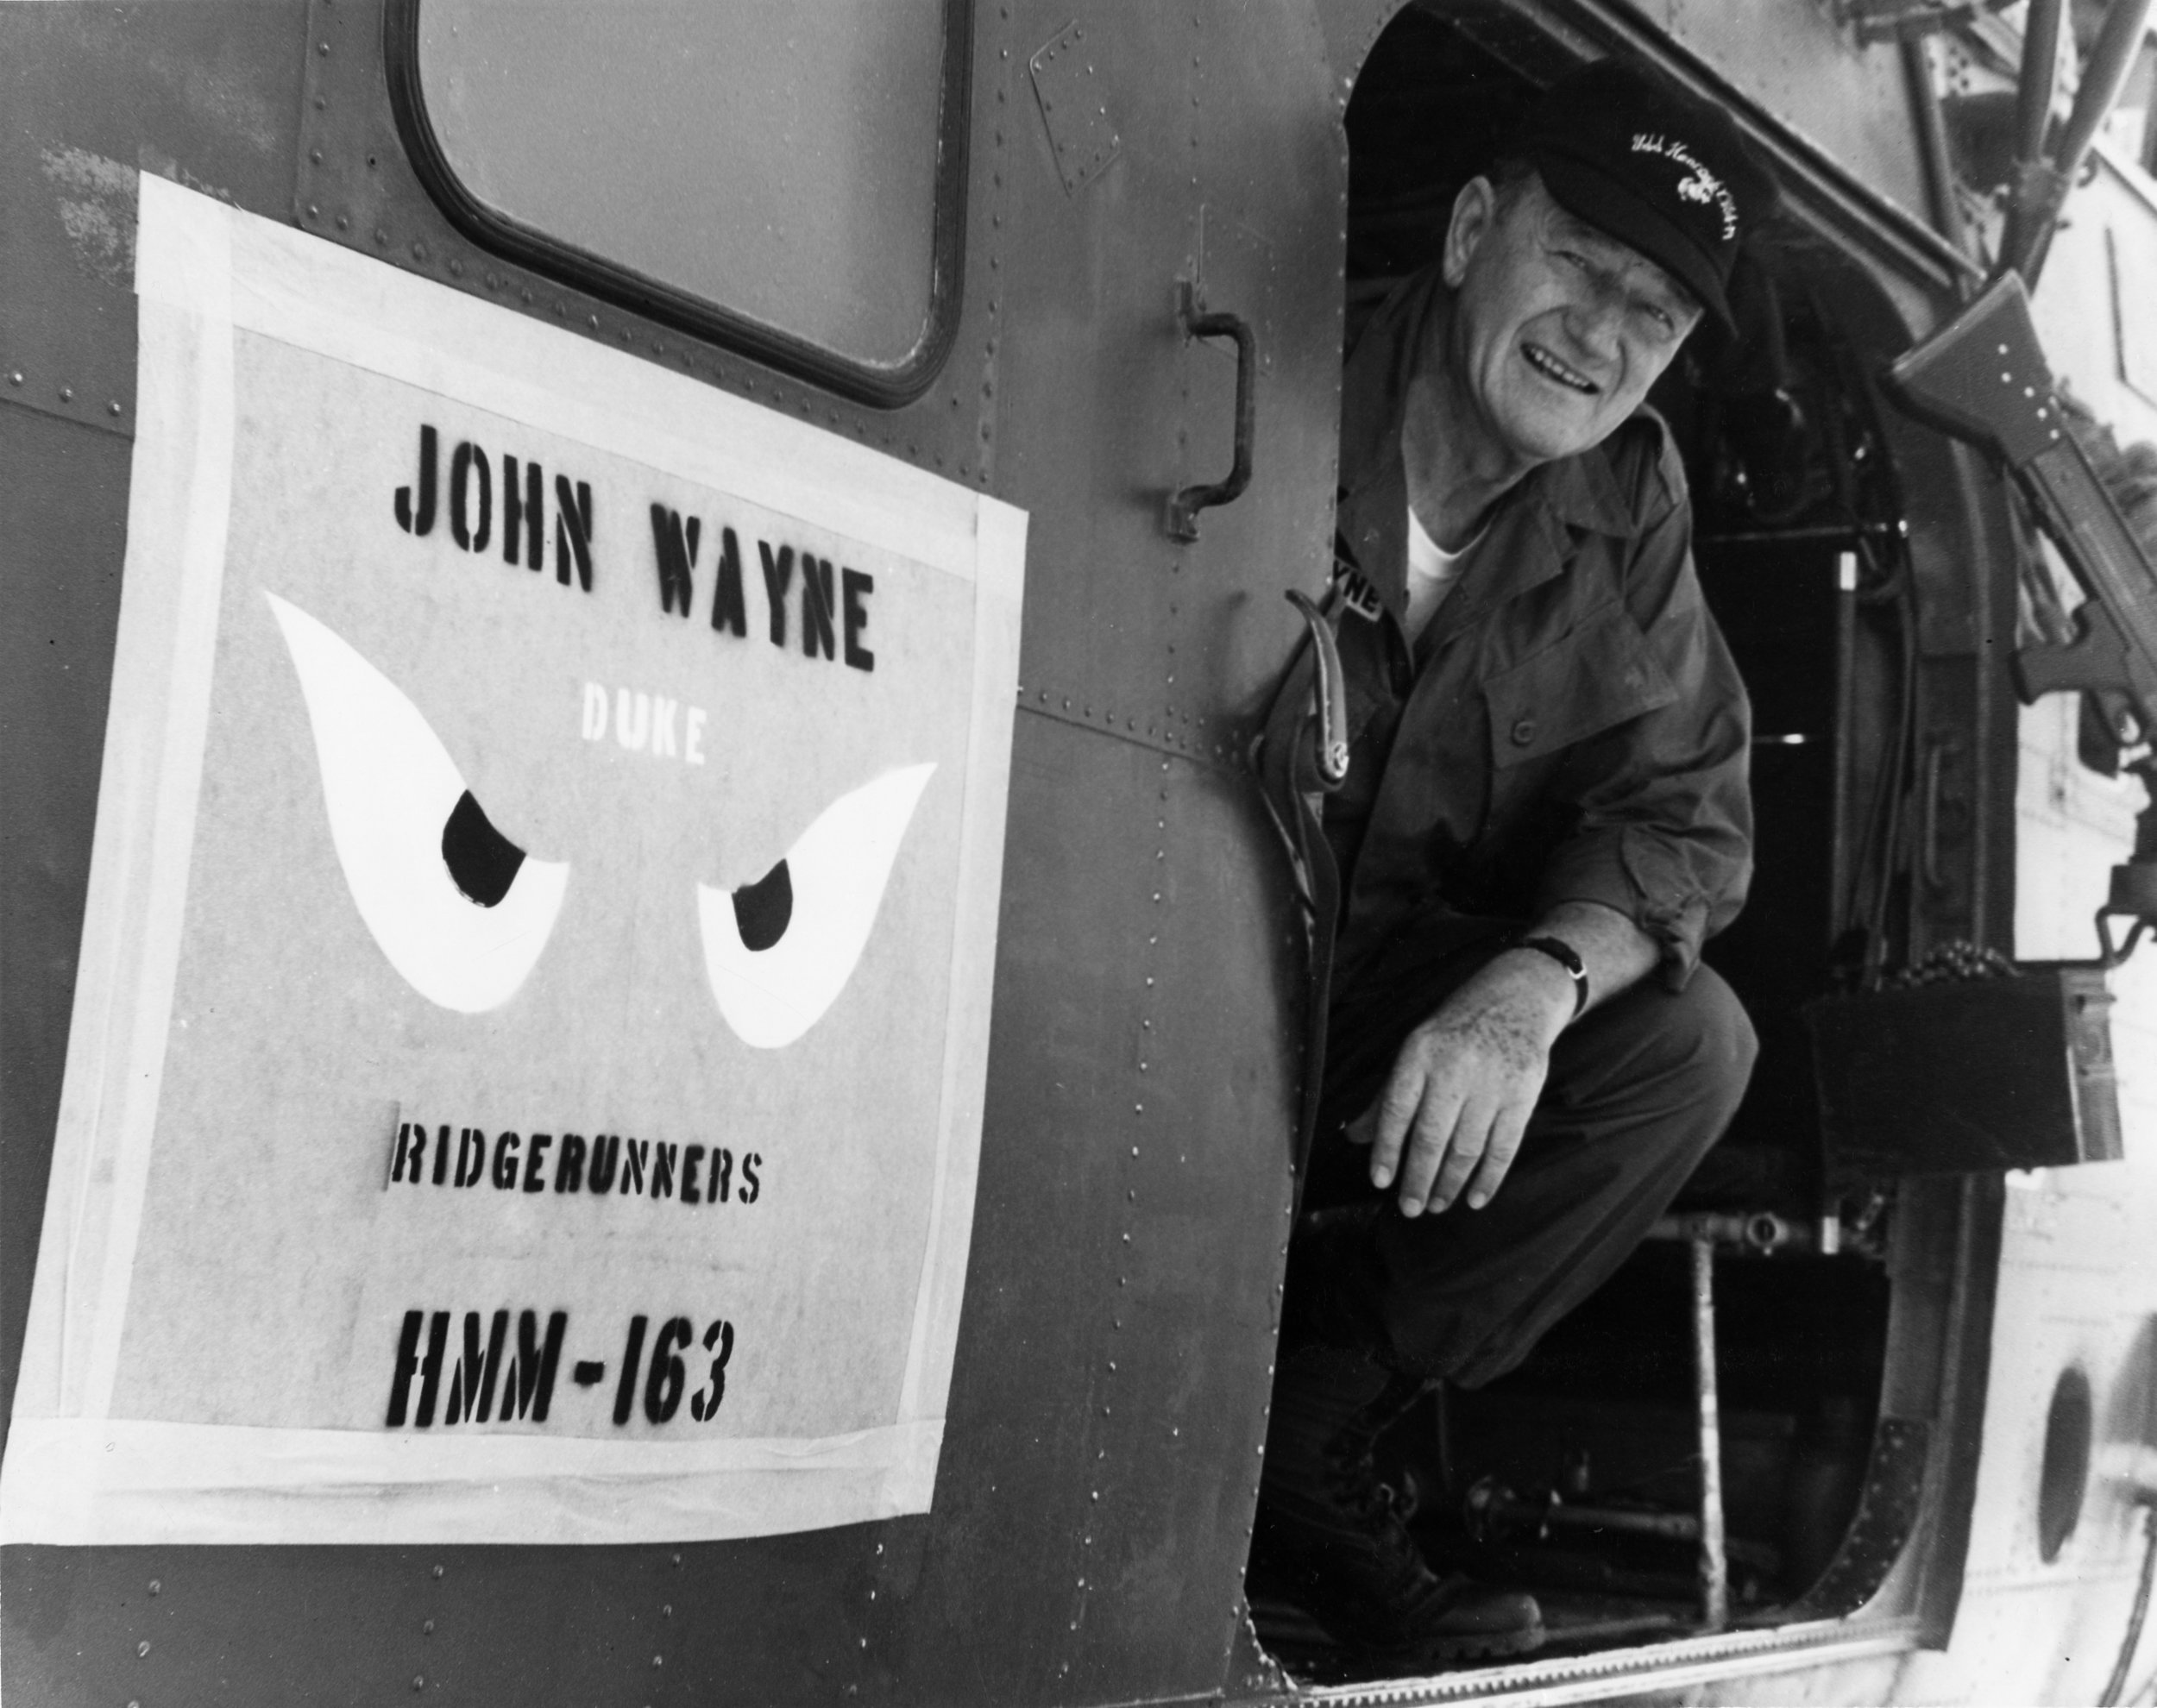 """John Wayne aboard the Medium Lift Tiltrotor Squadron HMM-163 while visiting the troops in Vietnam in 1966. The aircraft was commandeered by the US Marine Corps helicopter squadron known as the """"Ridge Runner's"""". The HMM-163 featured painted """"Genie Eyes"""" after the """"I Dream of Jeannie"""" TV show on the side of the helicopter. Photo courtesy of CPL. L. L. Atherton"""